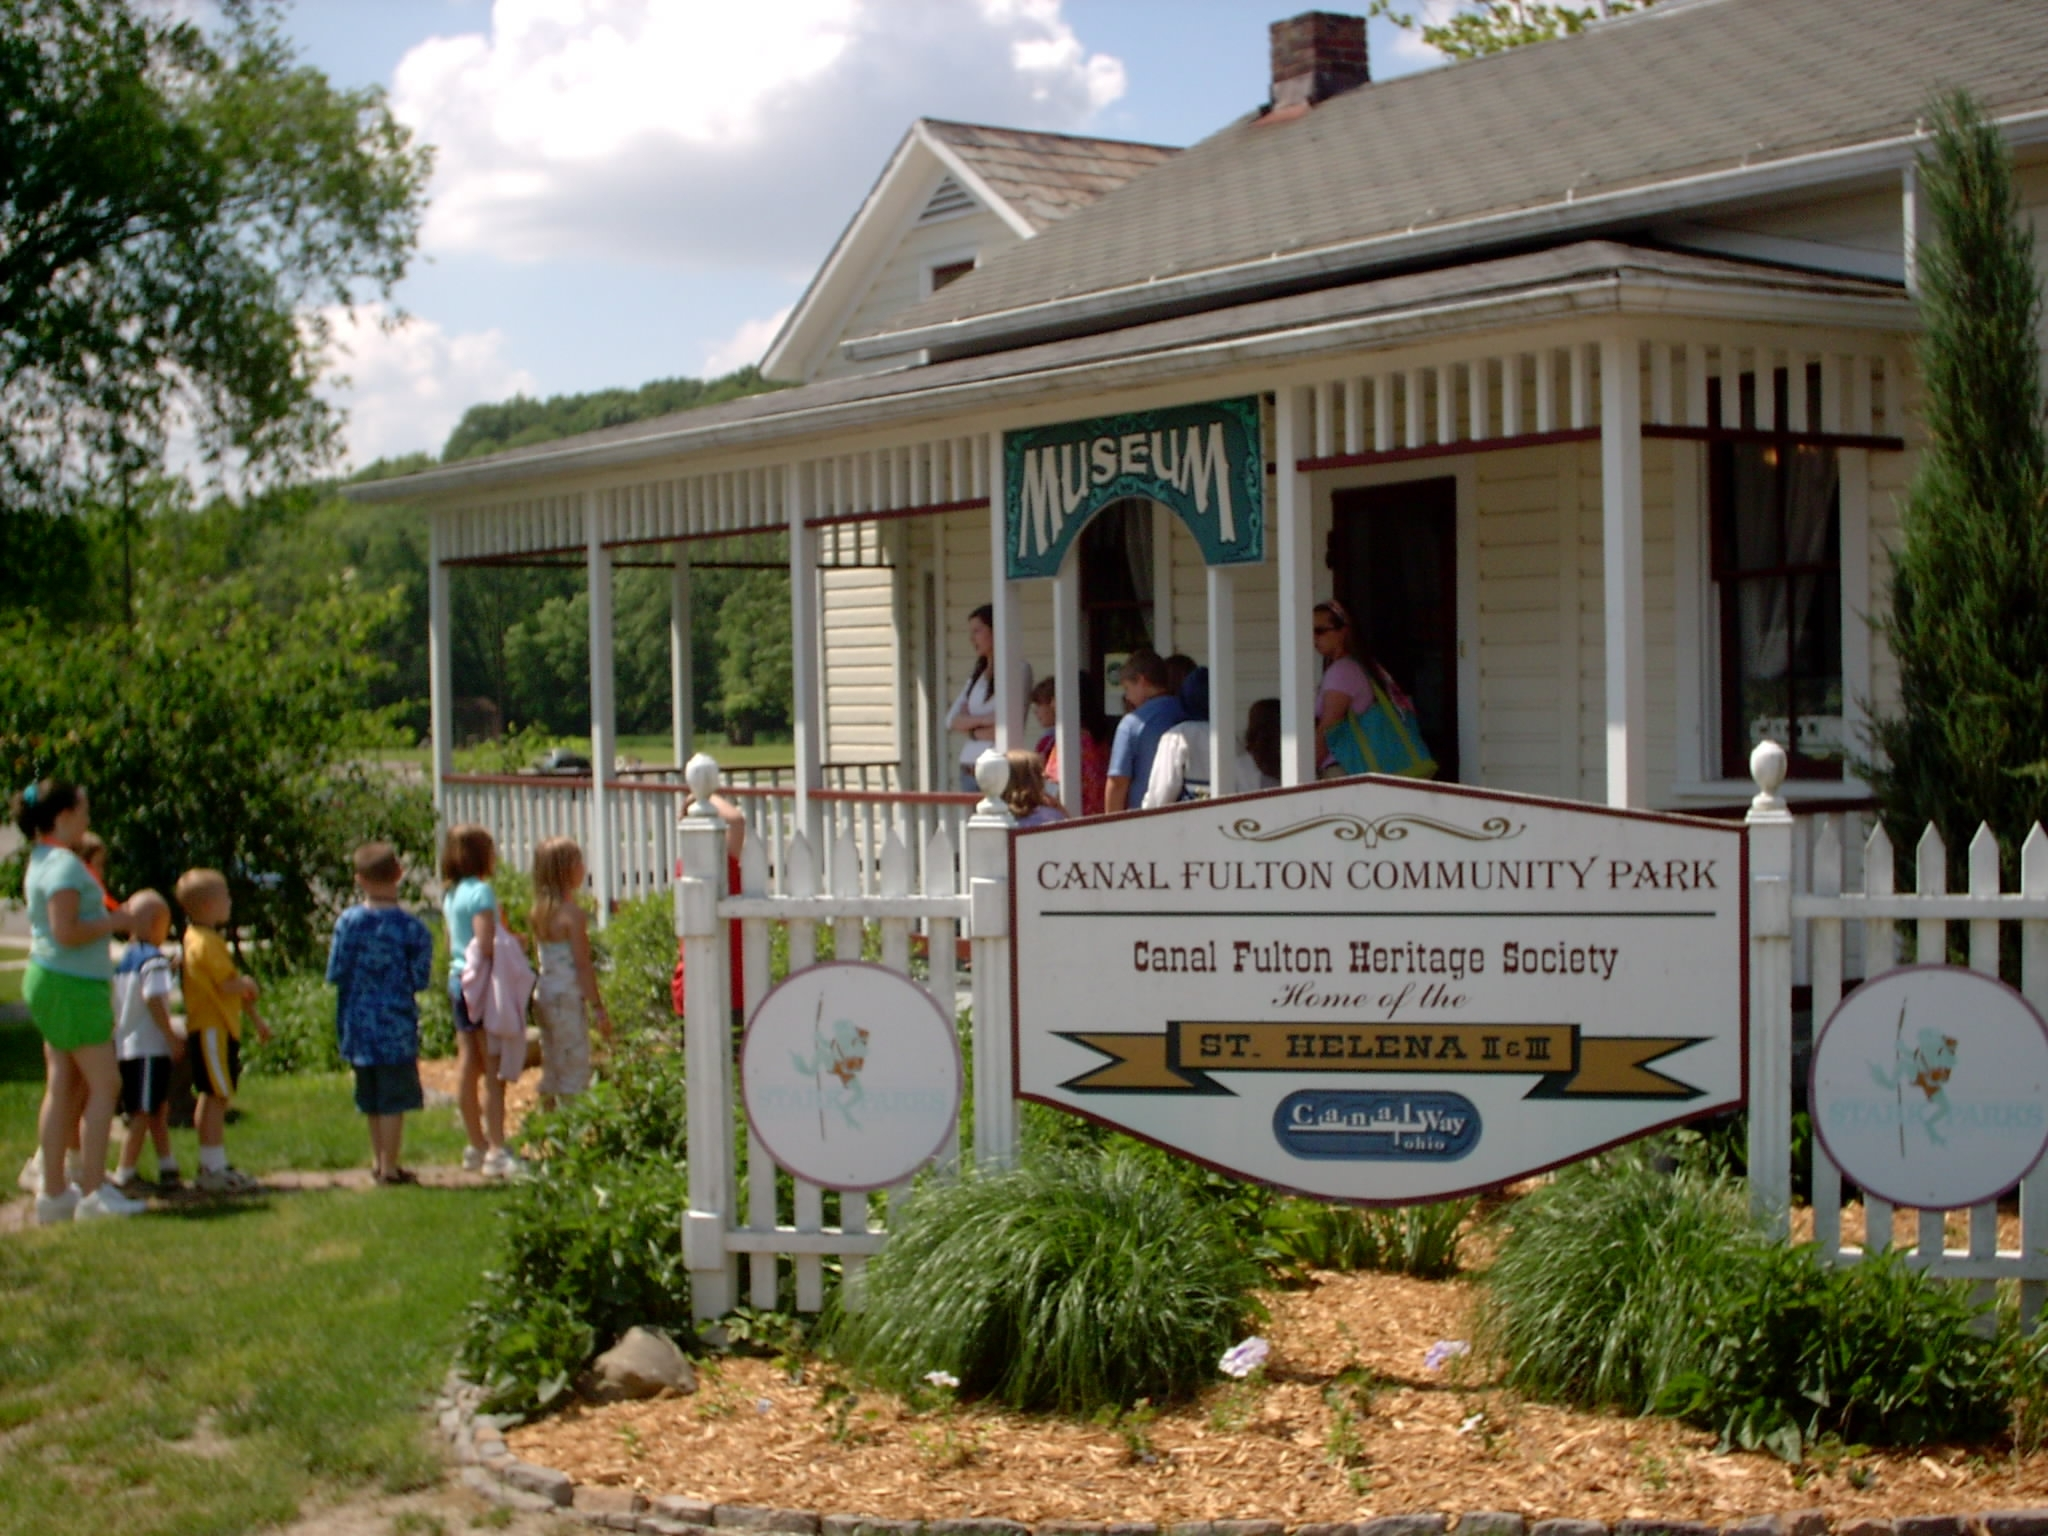 Students visit the Old Canal Days Museum. Once known as the